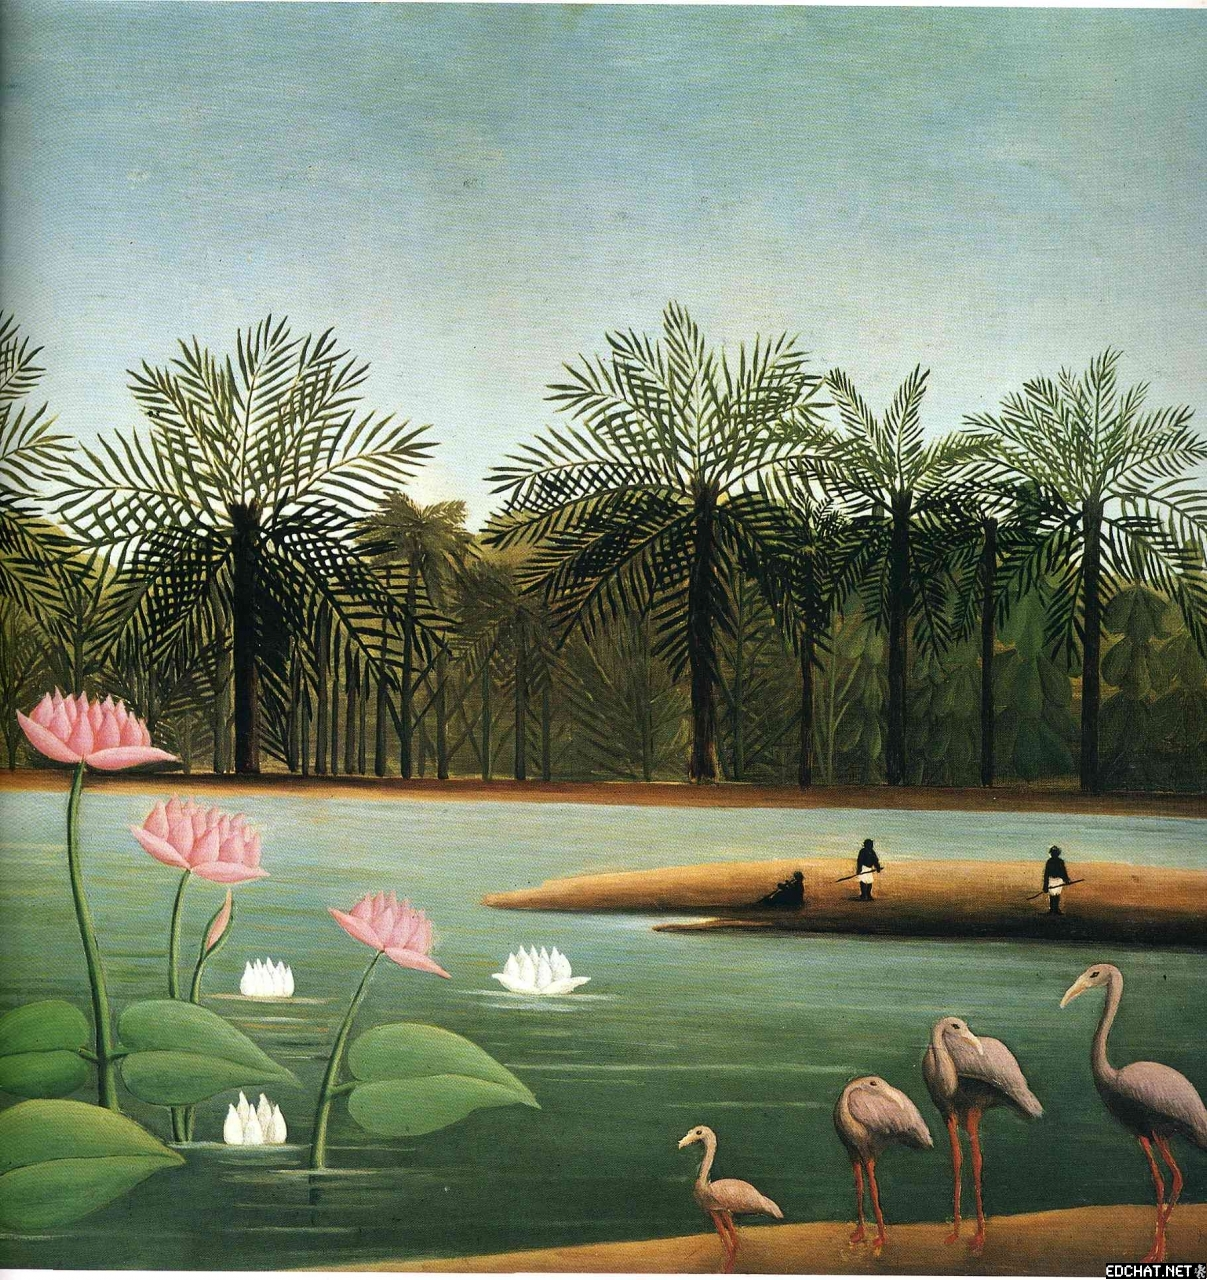 an introduction to the life of henri rousseau the dounier He is known henri rousseau, the dounier for his richly support my independent life home page meet the henri rousseau was completely an overview of.